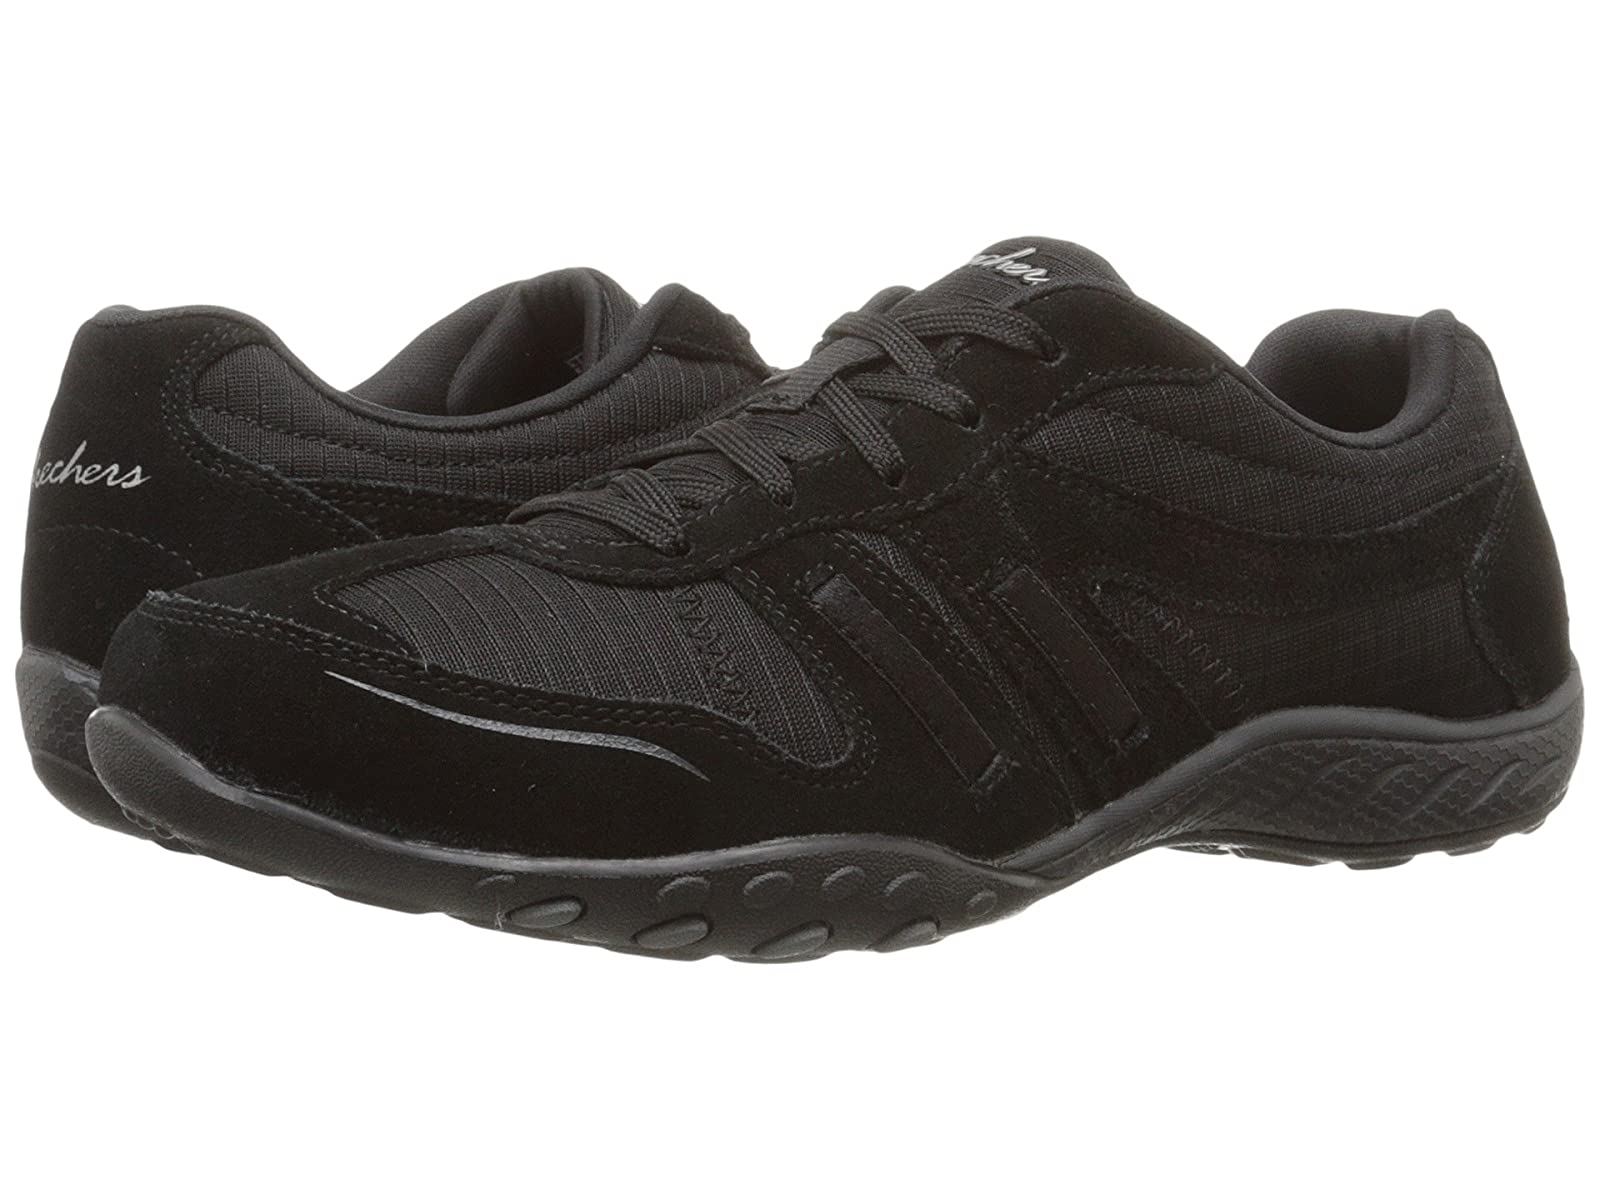 SKECHERS SKECHERS SKECHERS Breathe - Easy Again 5e5dd3